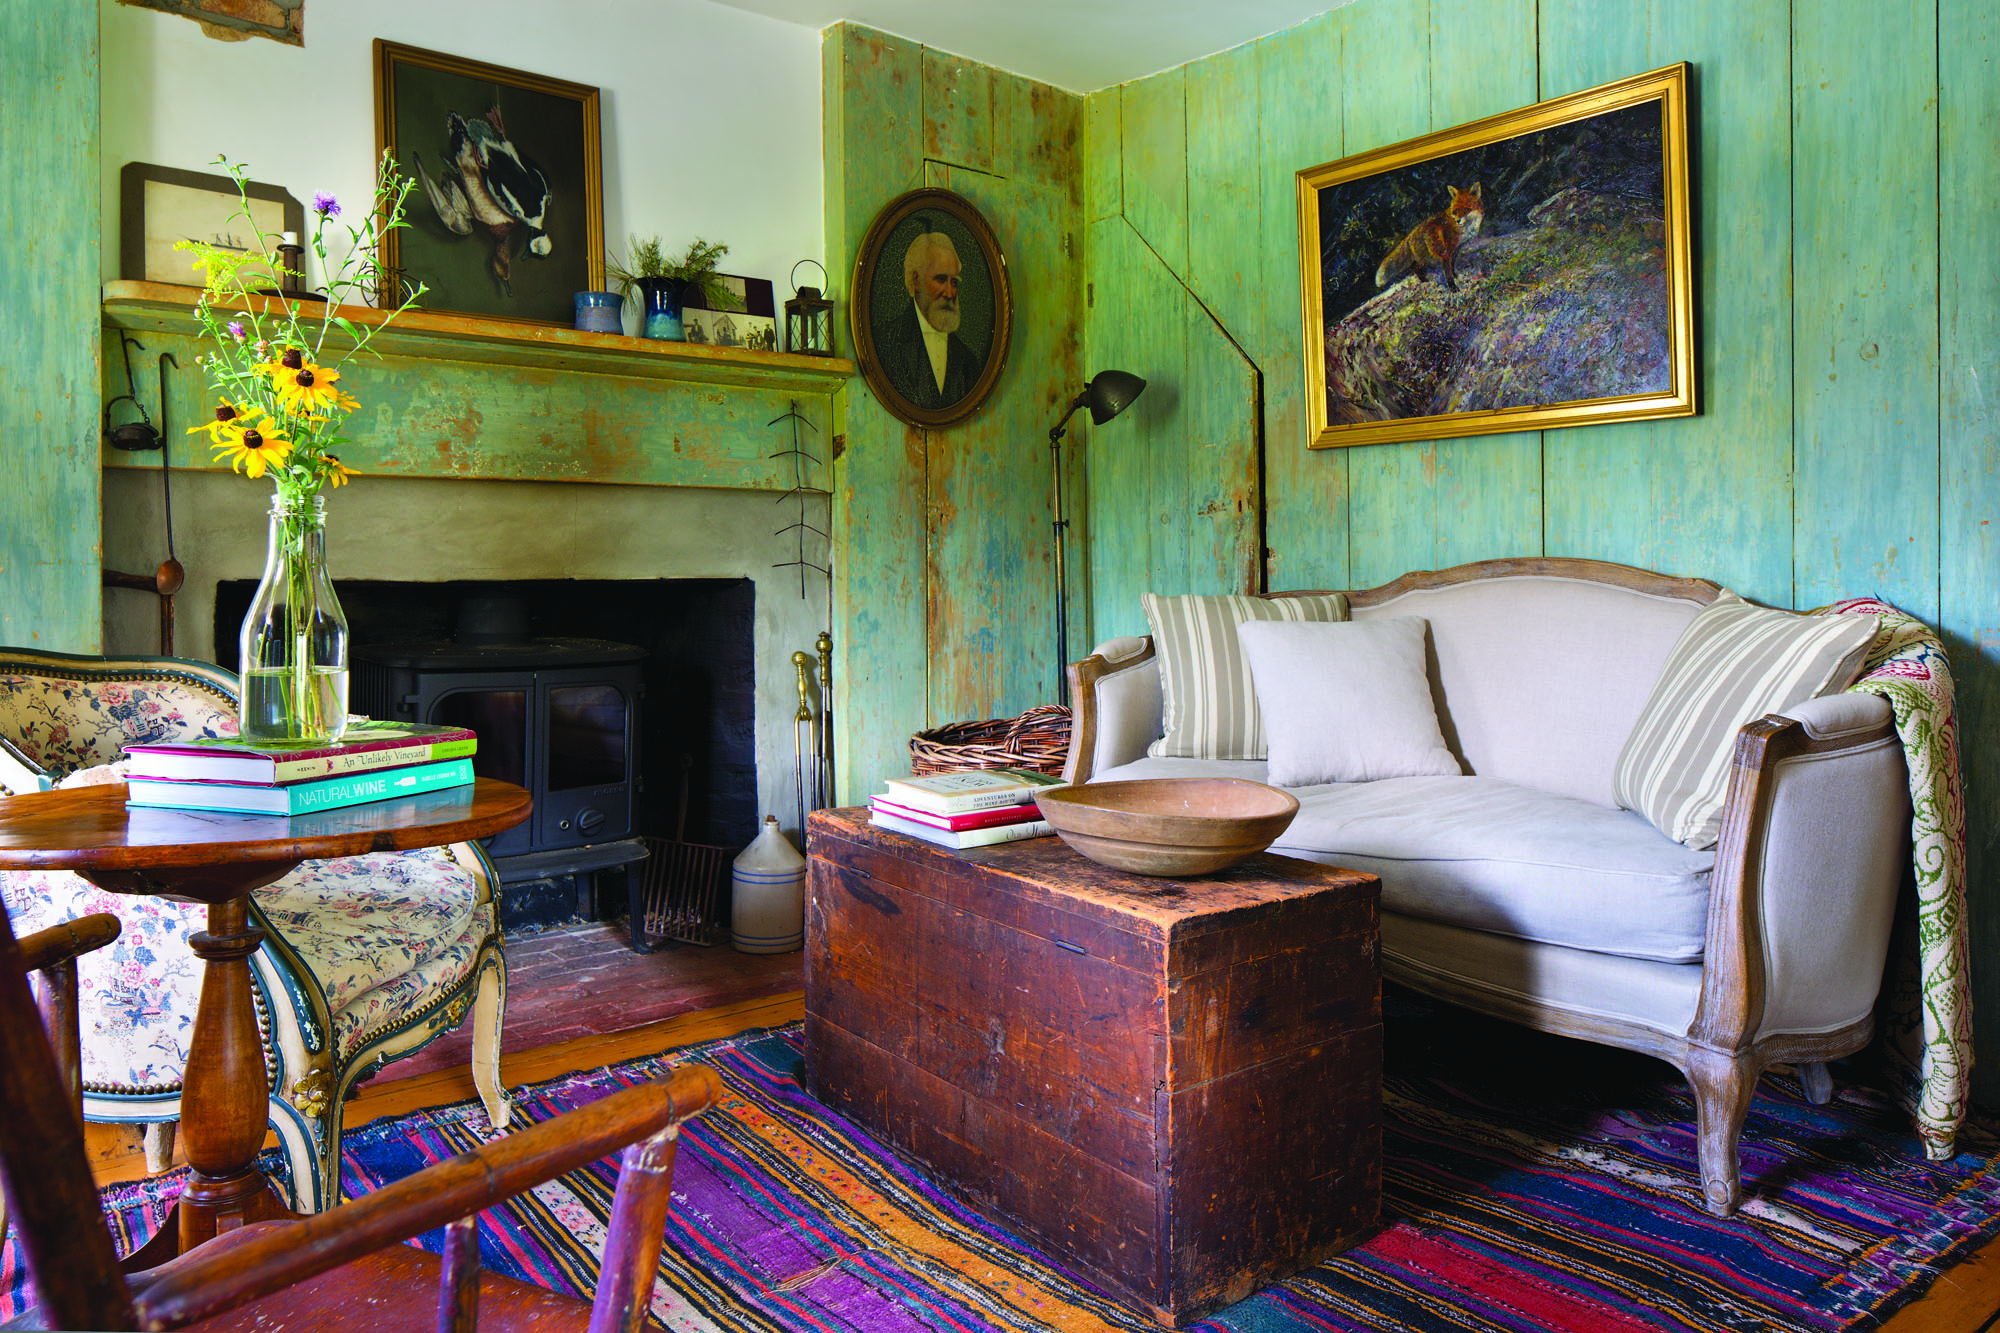 SOUTH PARLOR  On its two interior walls, the old parlor boasts original vertical sheathing still wearing its old blue-green color. The odd door to the left of the sofa leads to the root cellar.